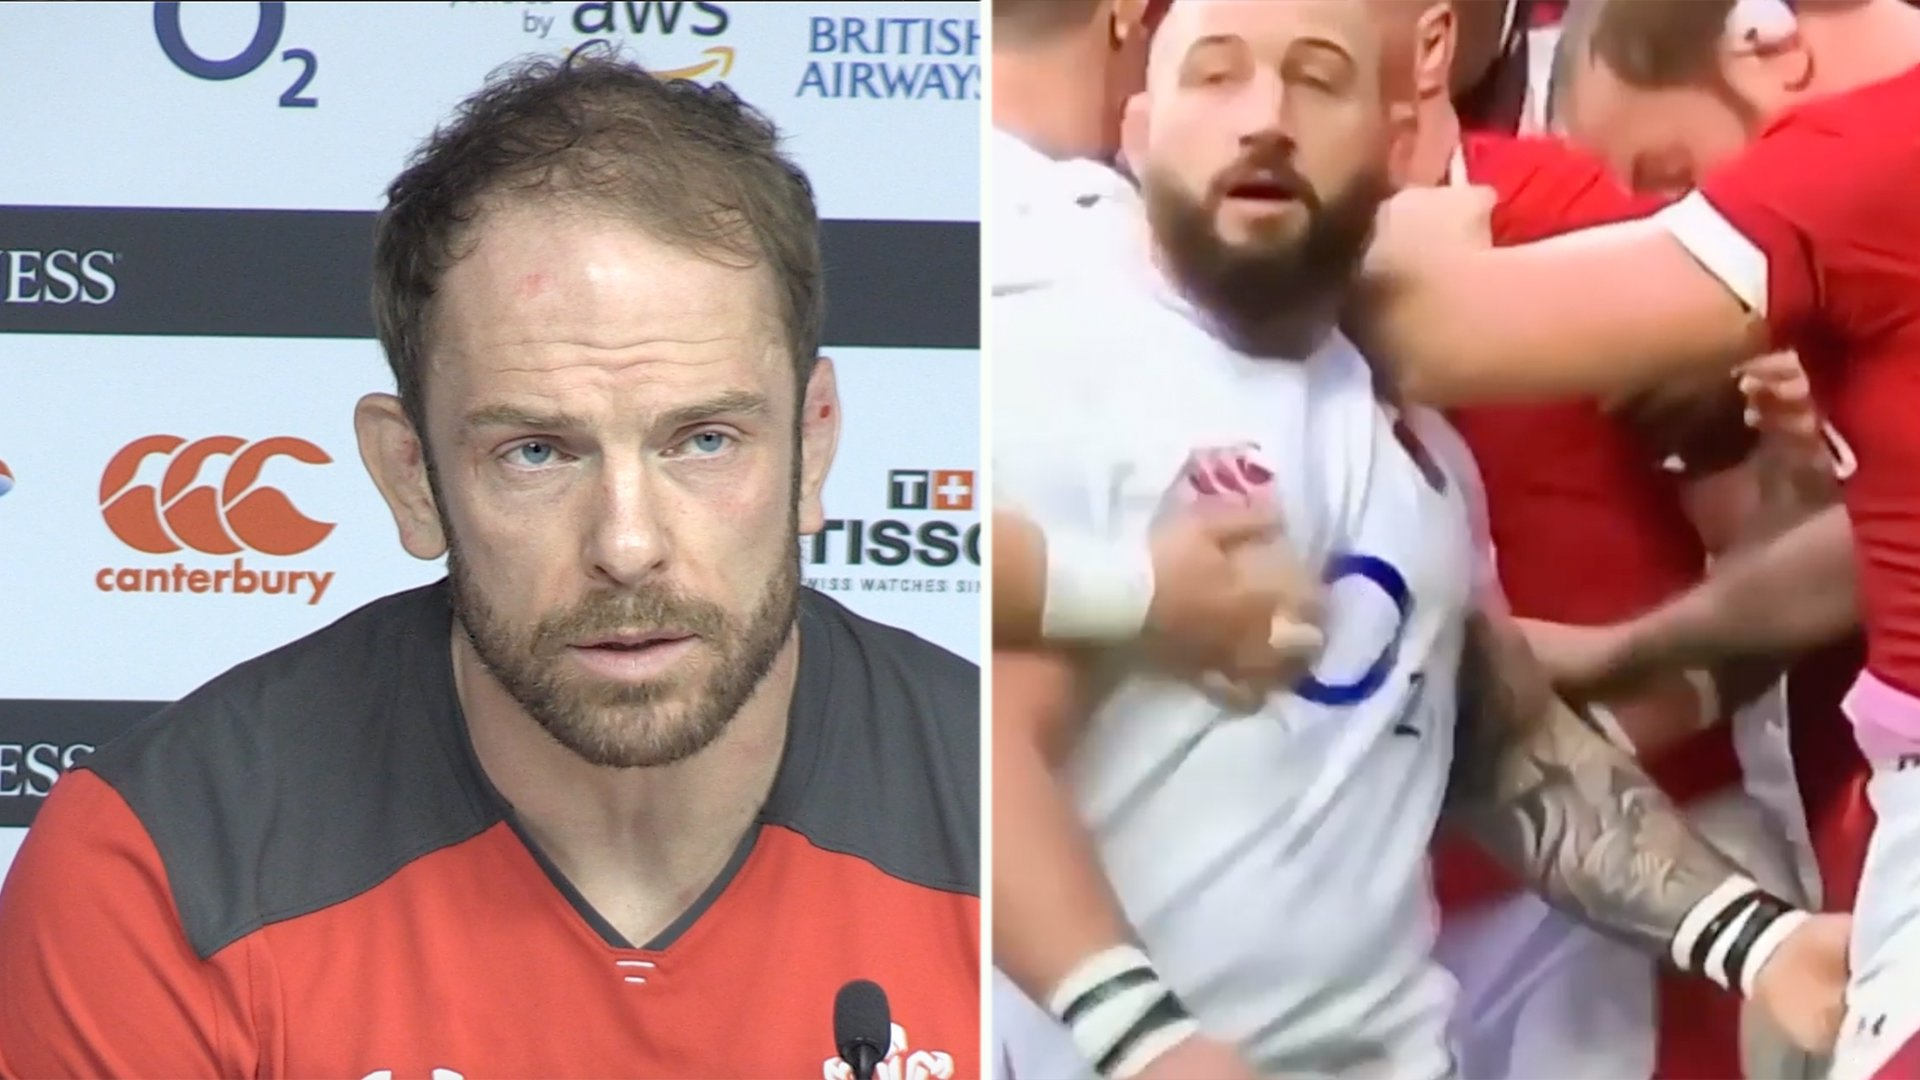 Alun Wyn Jones gives his frank opinion on what Joe Marler did to him in press conference